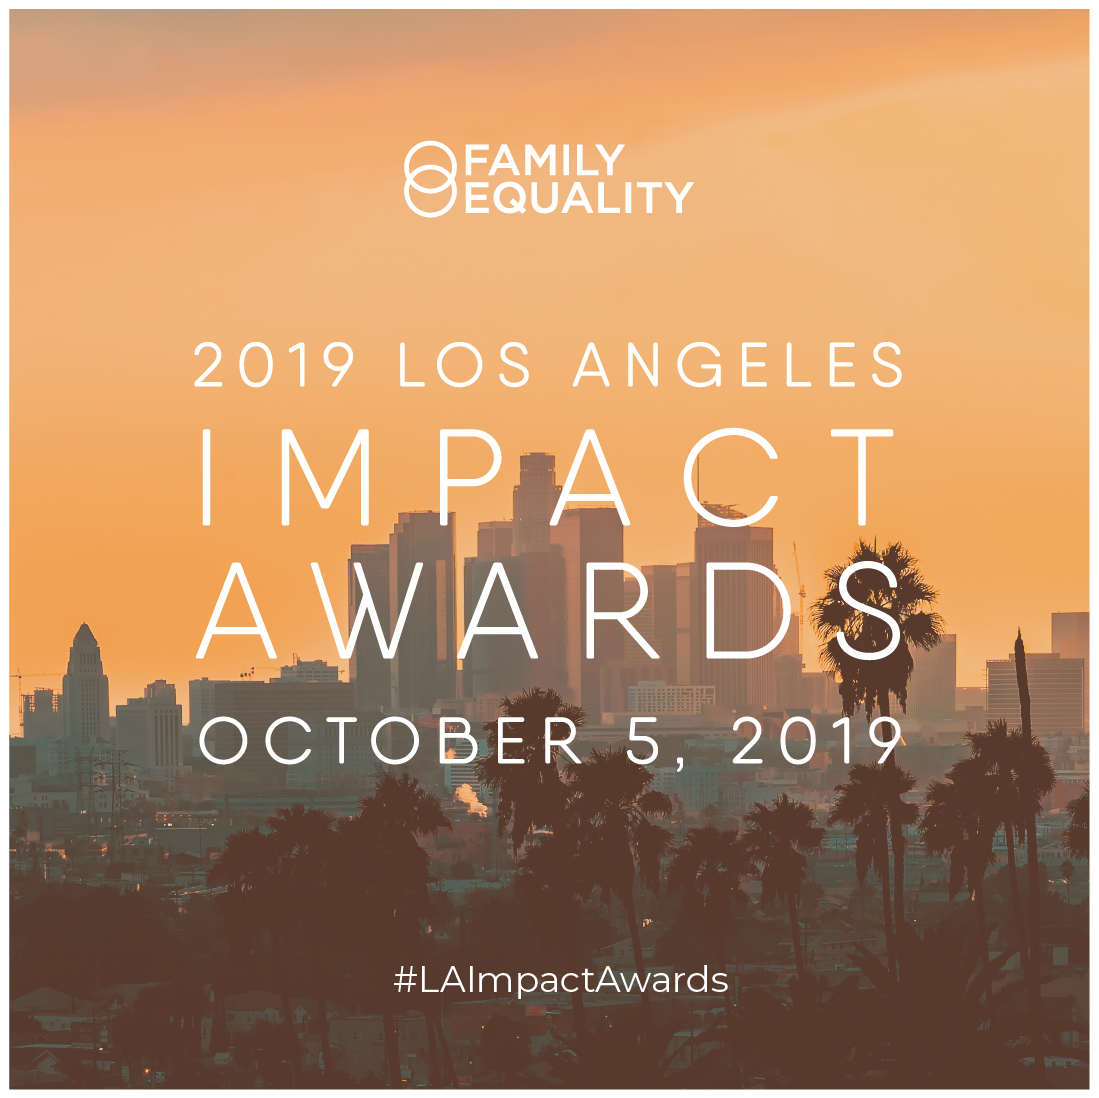 Sample caption: It's not everyday that #LGBTQ families and youth get the respect and recognition they deserve. At  @familyequality 's #LAImpactAwards, we're making sure they do. laimpactawards.com